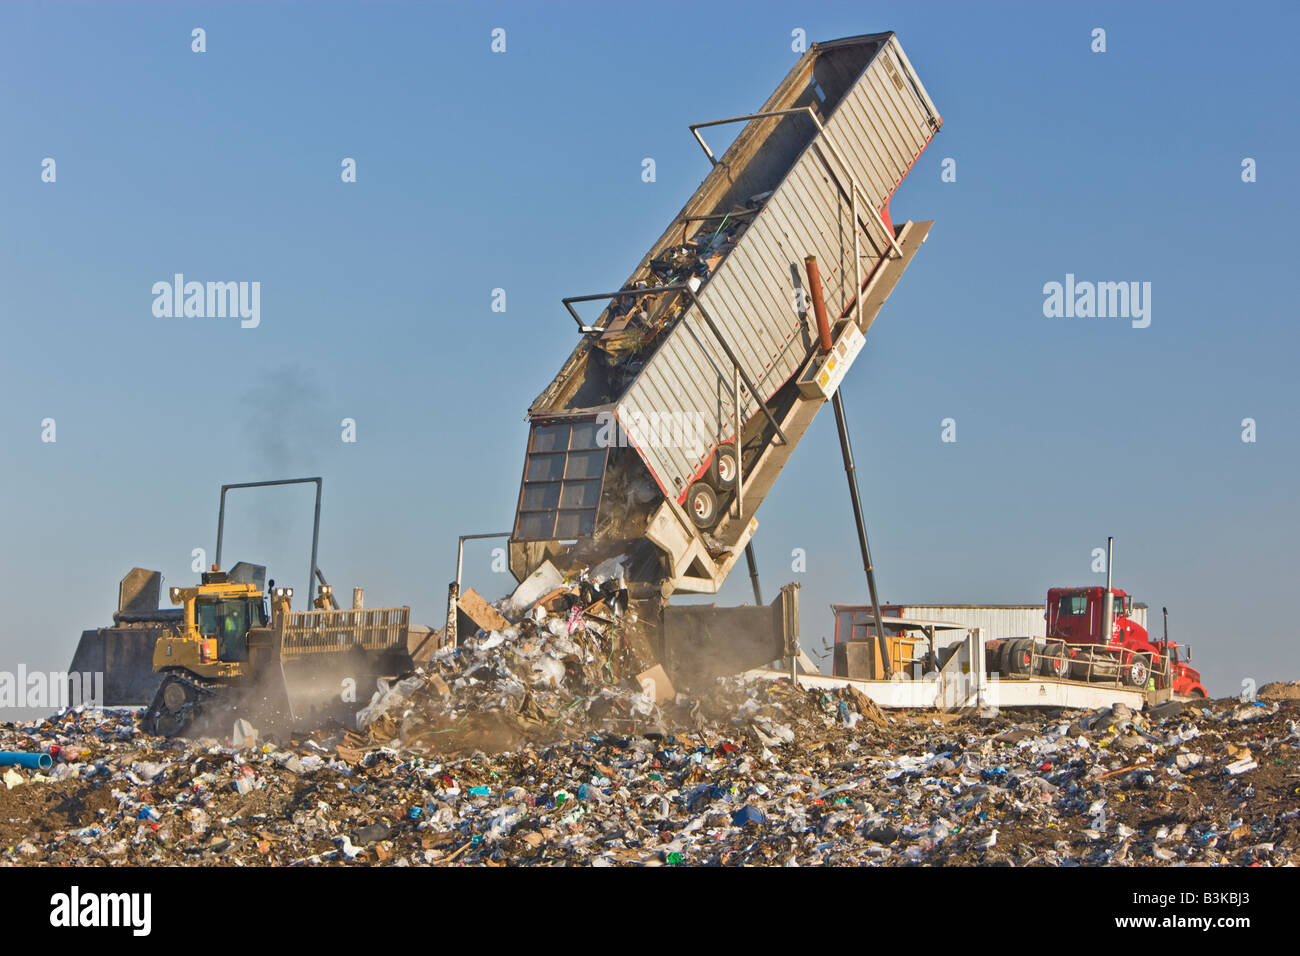 Tipper dumping semi trailer containing trash. - Stock Image